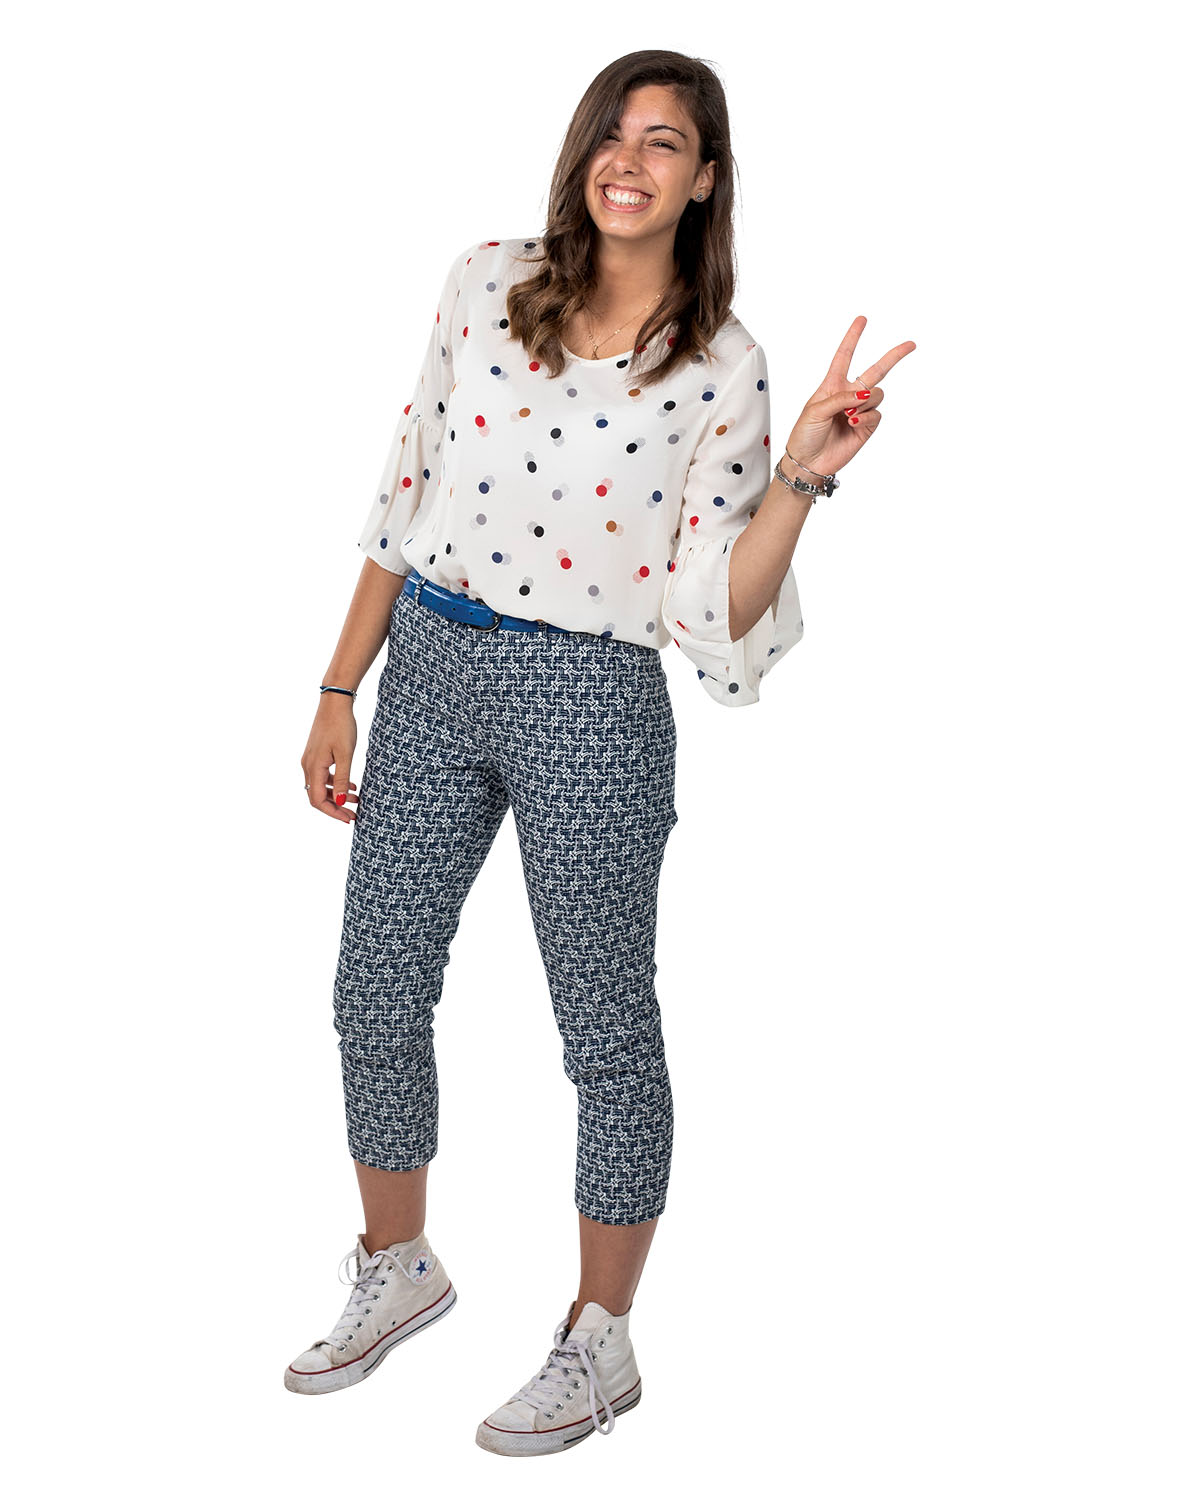 A woman in a white polka dot shirt and patterned pants holds up a peace sign with her fingers as she smiles.